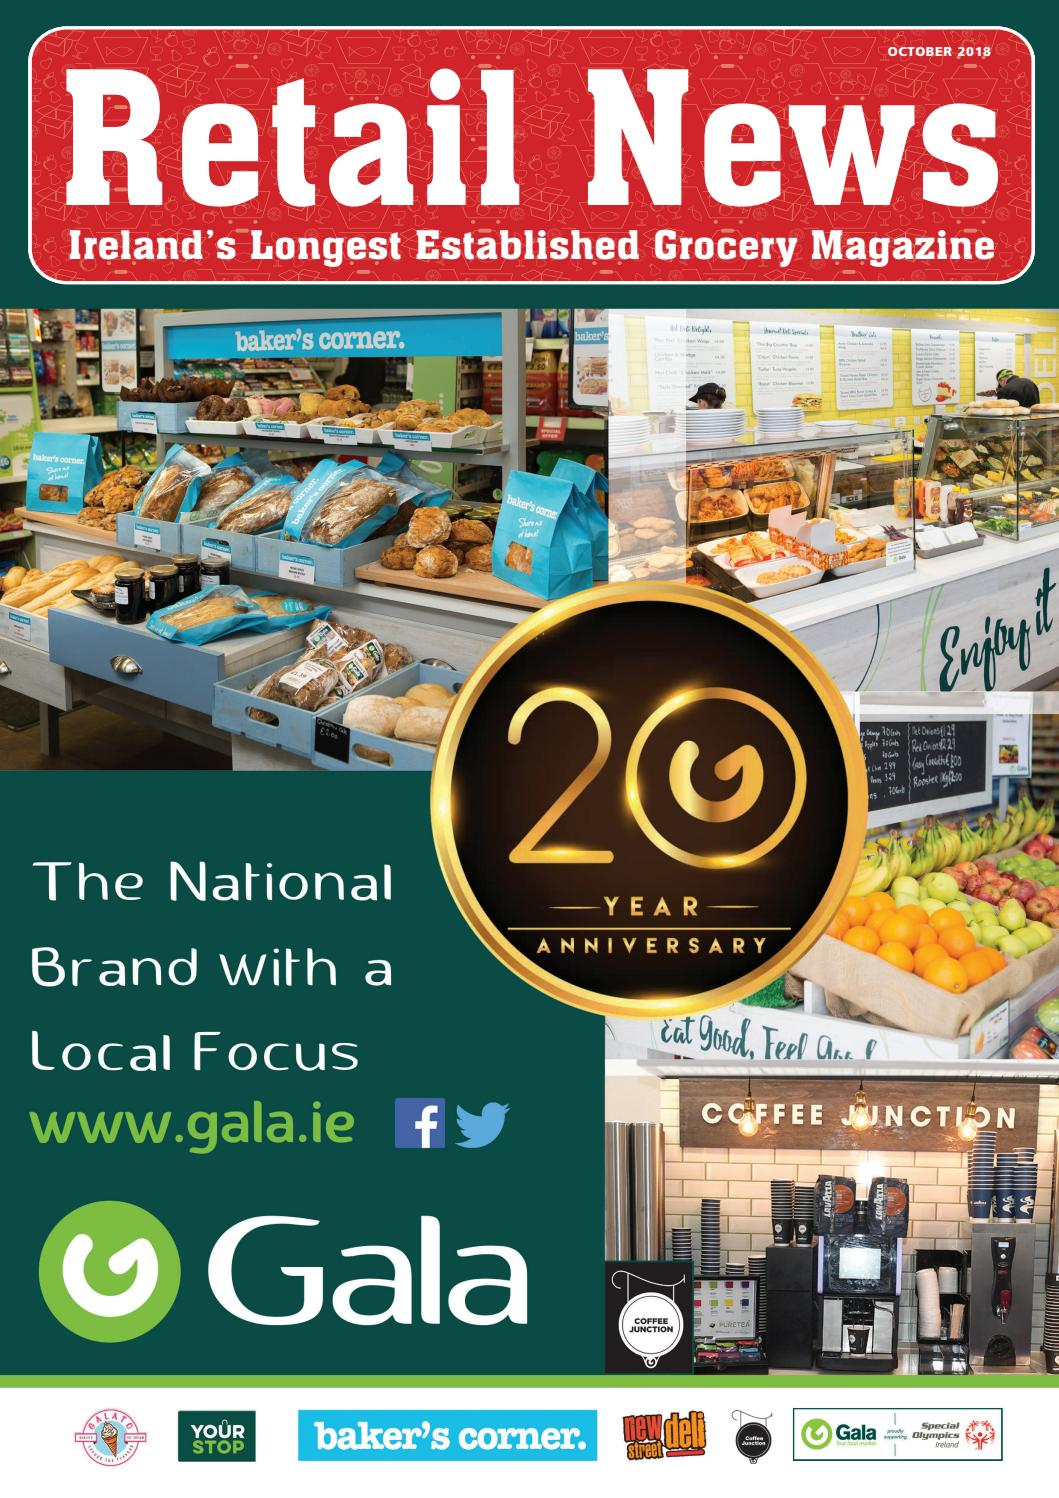 Retail News October 2018 by Retail News - issuu